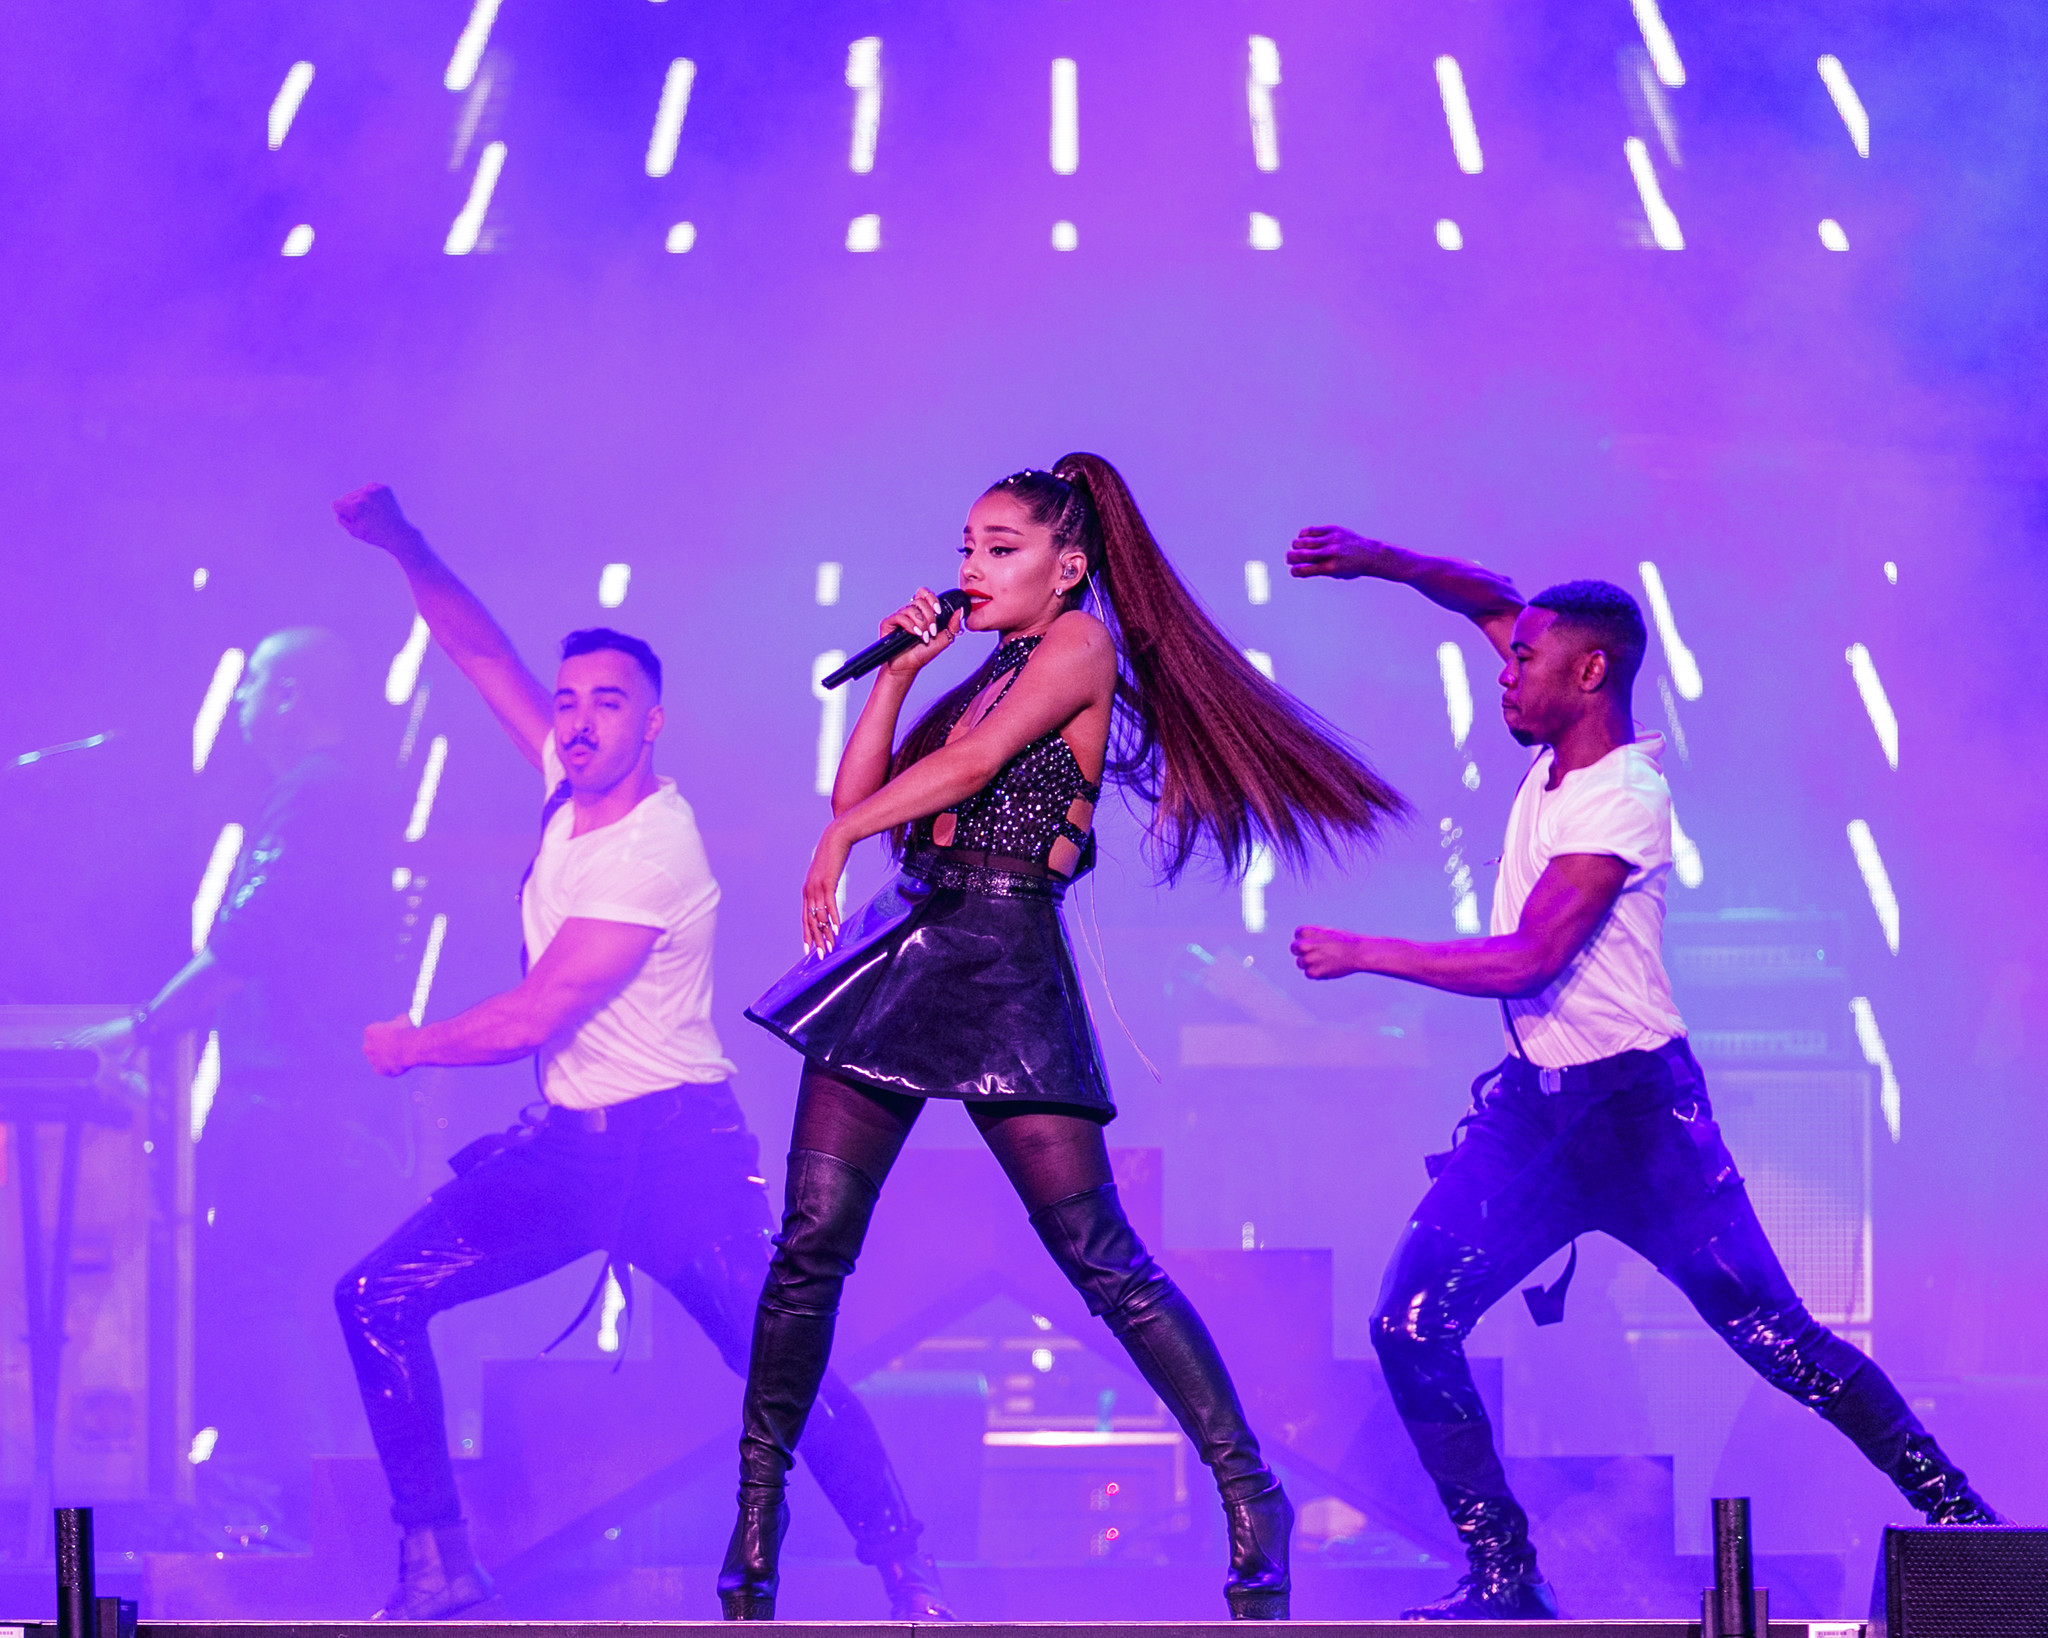 Ariana Grande announces plans to perform at Grammys after skipping 2019 show